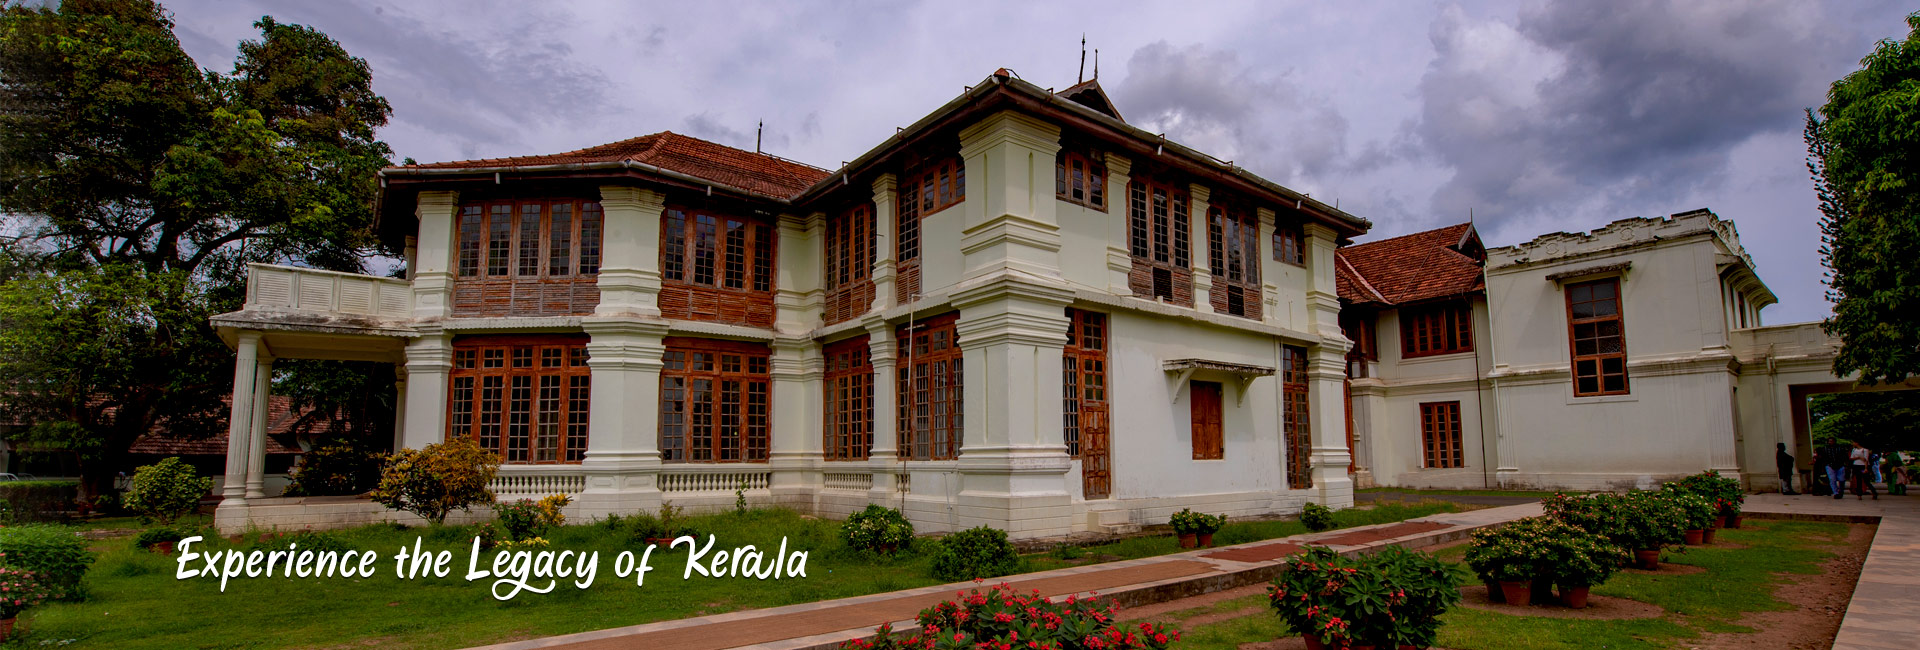 Experience the Legacy of Kerala